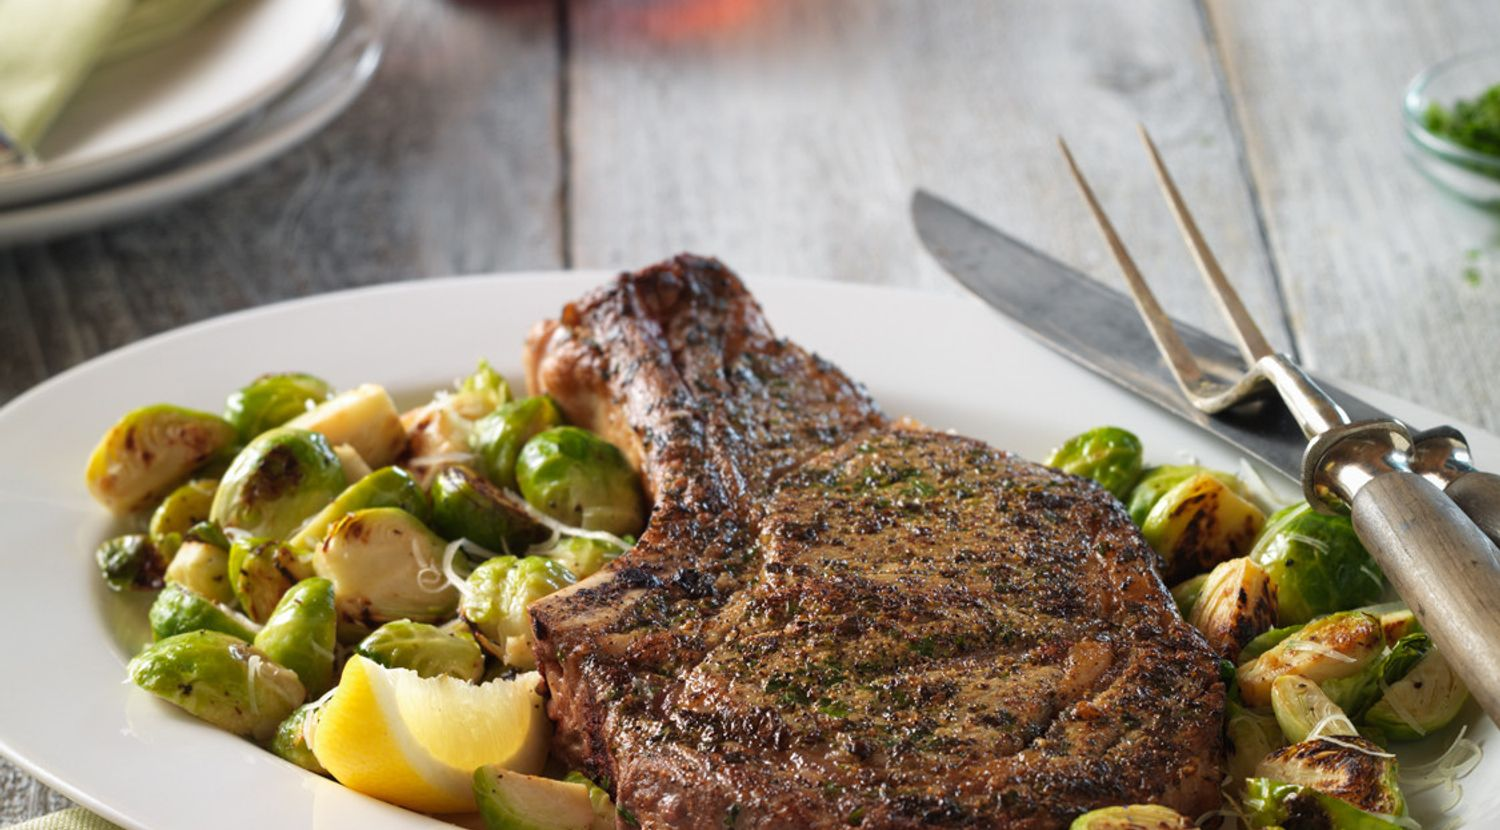 Ribeye and Sauteed Brussels Sprout Skillet Dinner for Two